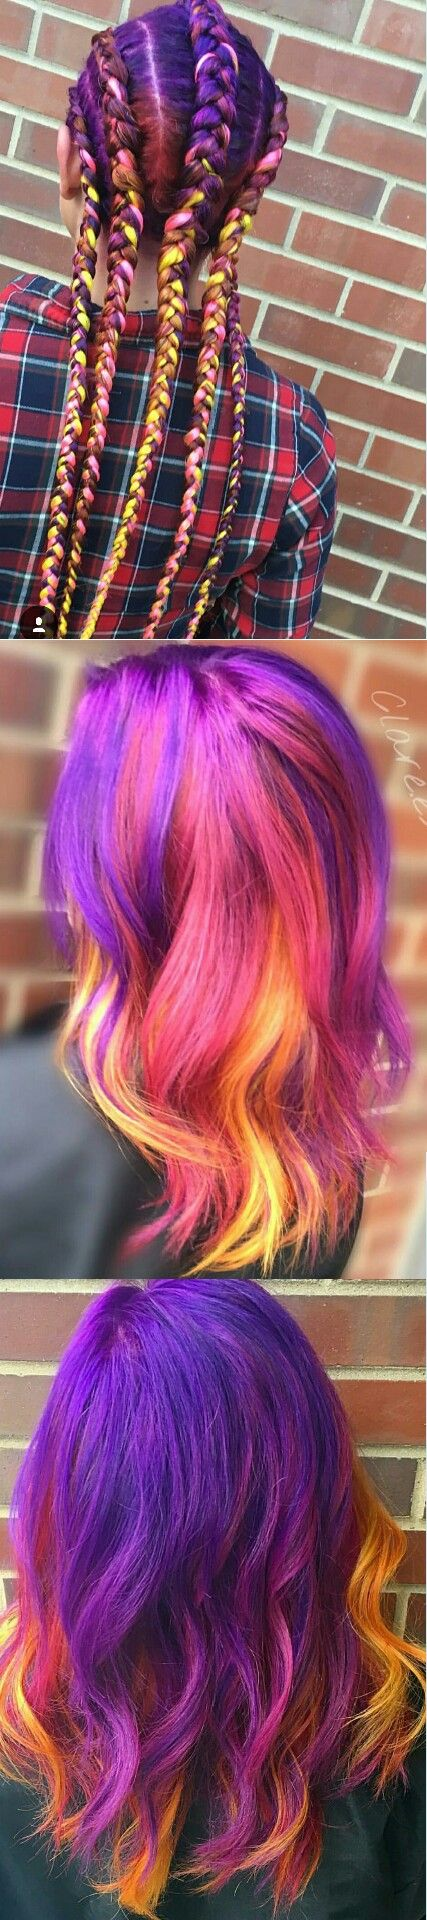 Purple yellow braided multi dyed hair color @clare.es